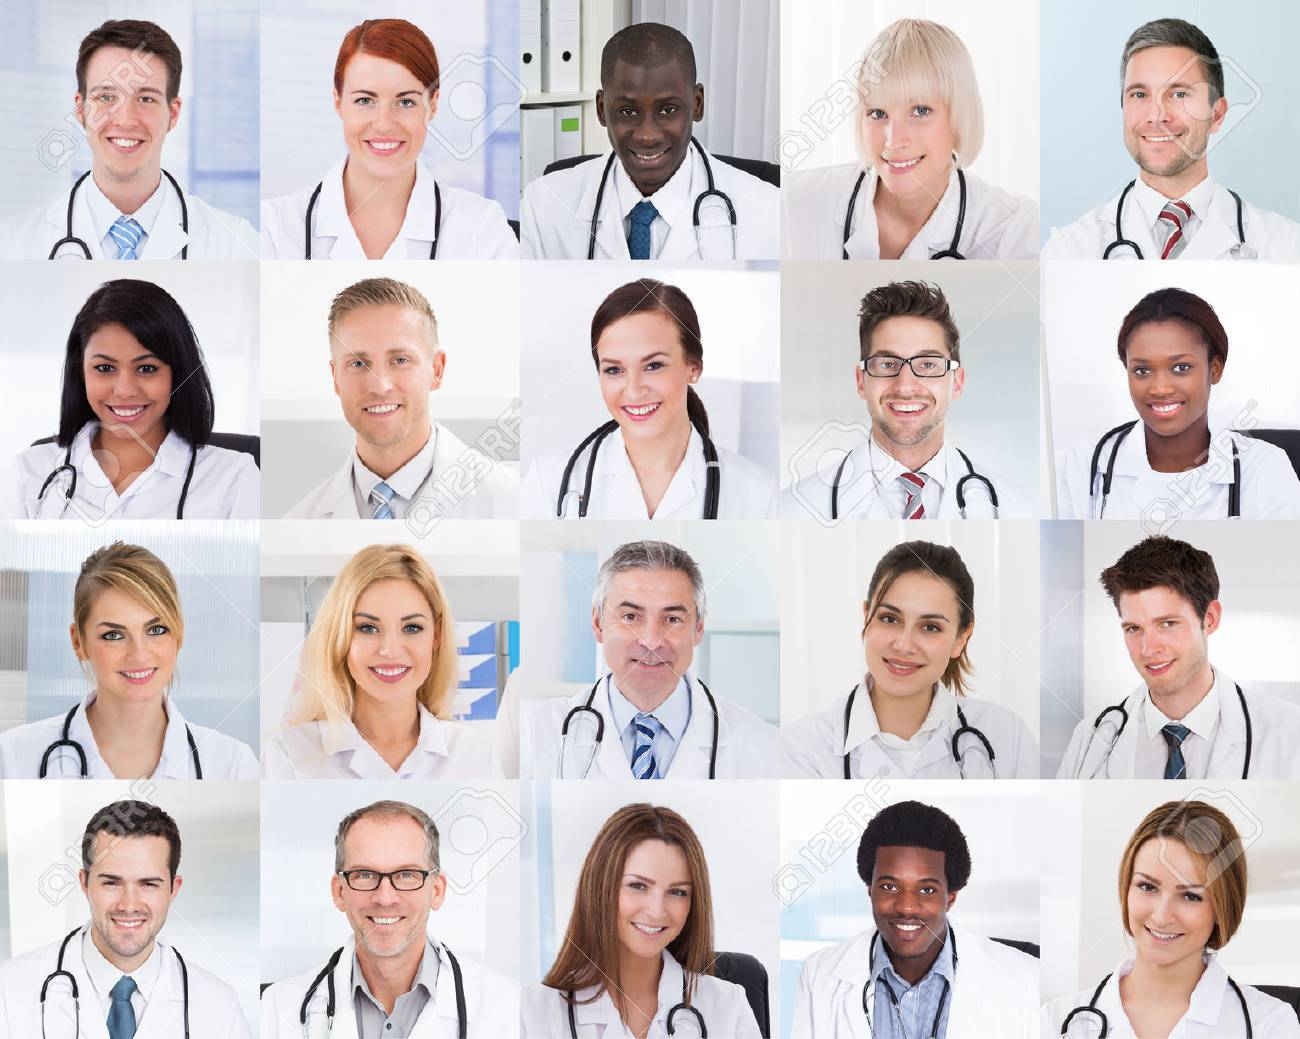 Collage Of Smiling Group Of Doctors With Different Multiethnic Banque d'images - 69612756